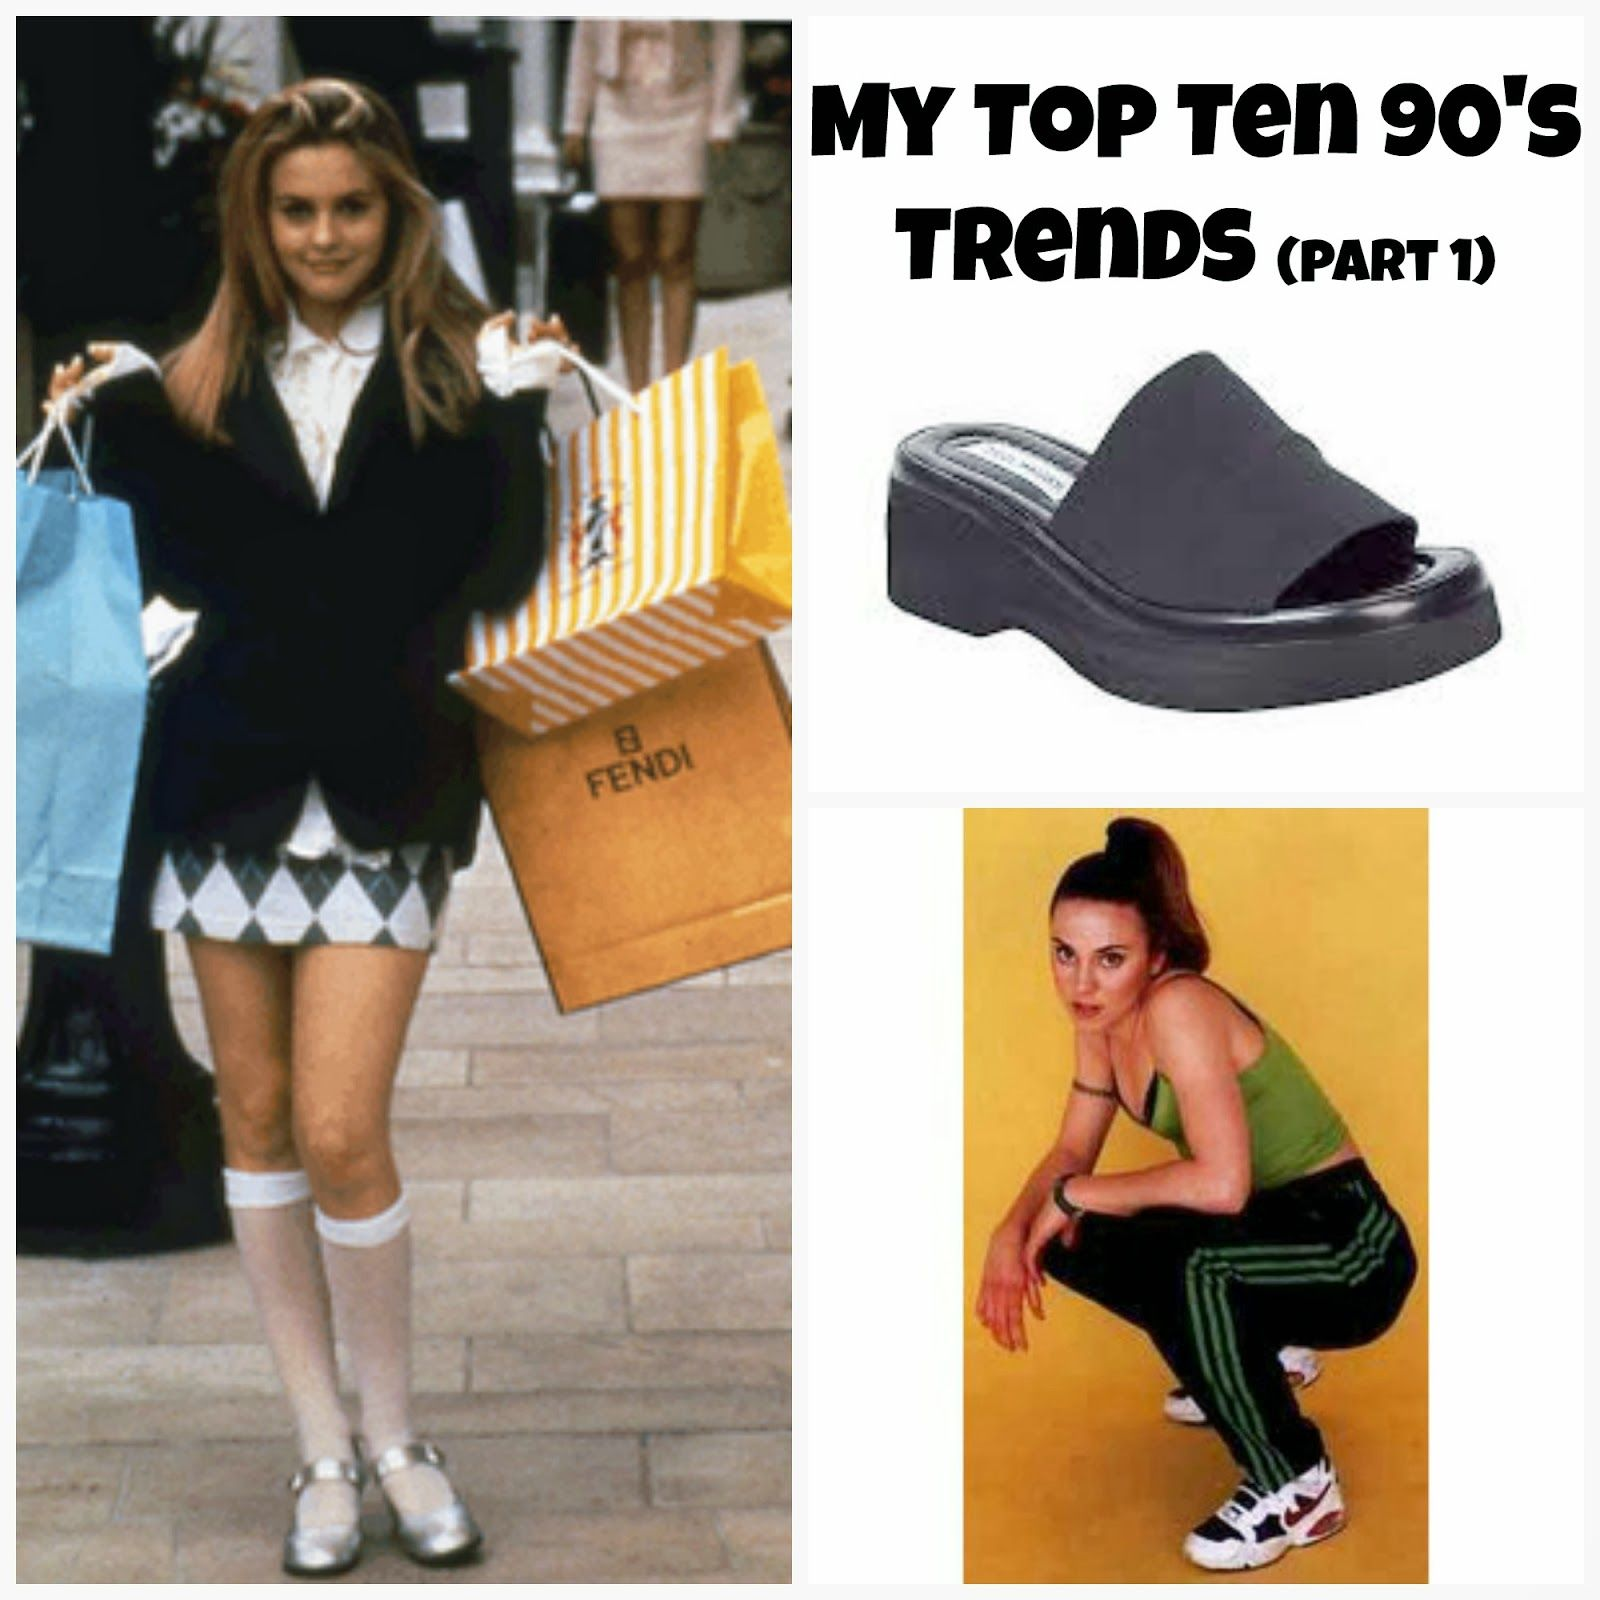 My top Ten 90's Trends (Part 1) Dancin' with A Dolly